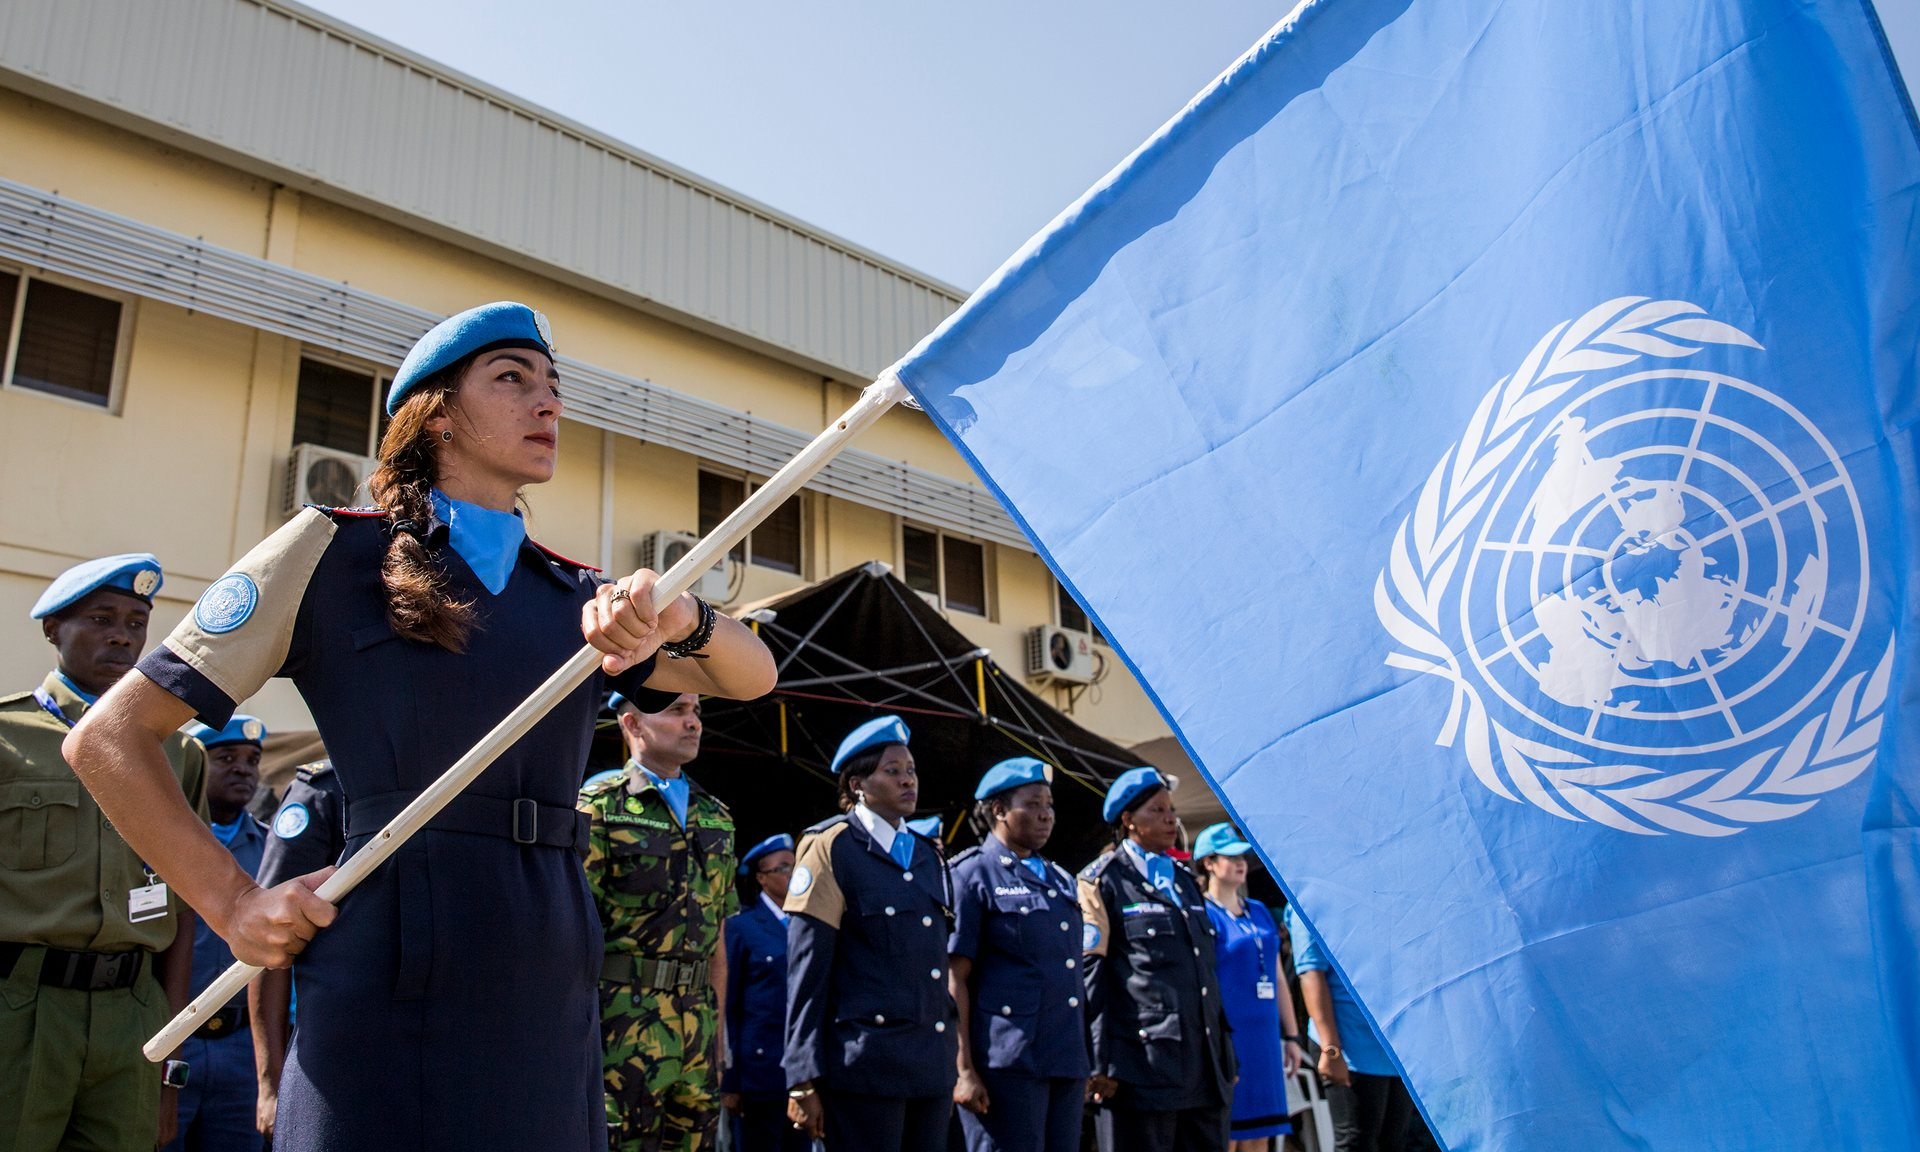 UN police officers in Juba, South Sudan. In some countries, social taboos make it impossible for male soldiers to communicate with women, underlining the vital role of female peacekeepers. Photograph: JC McIlwaine/UN Photo